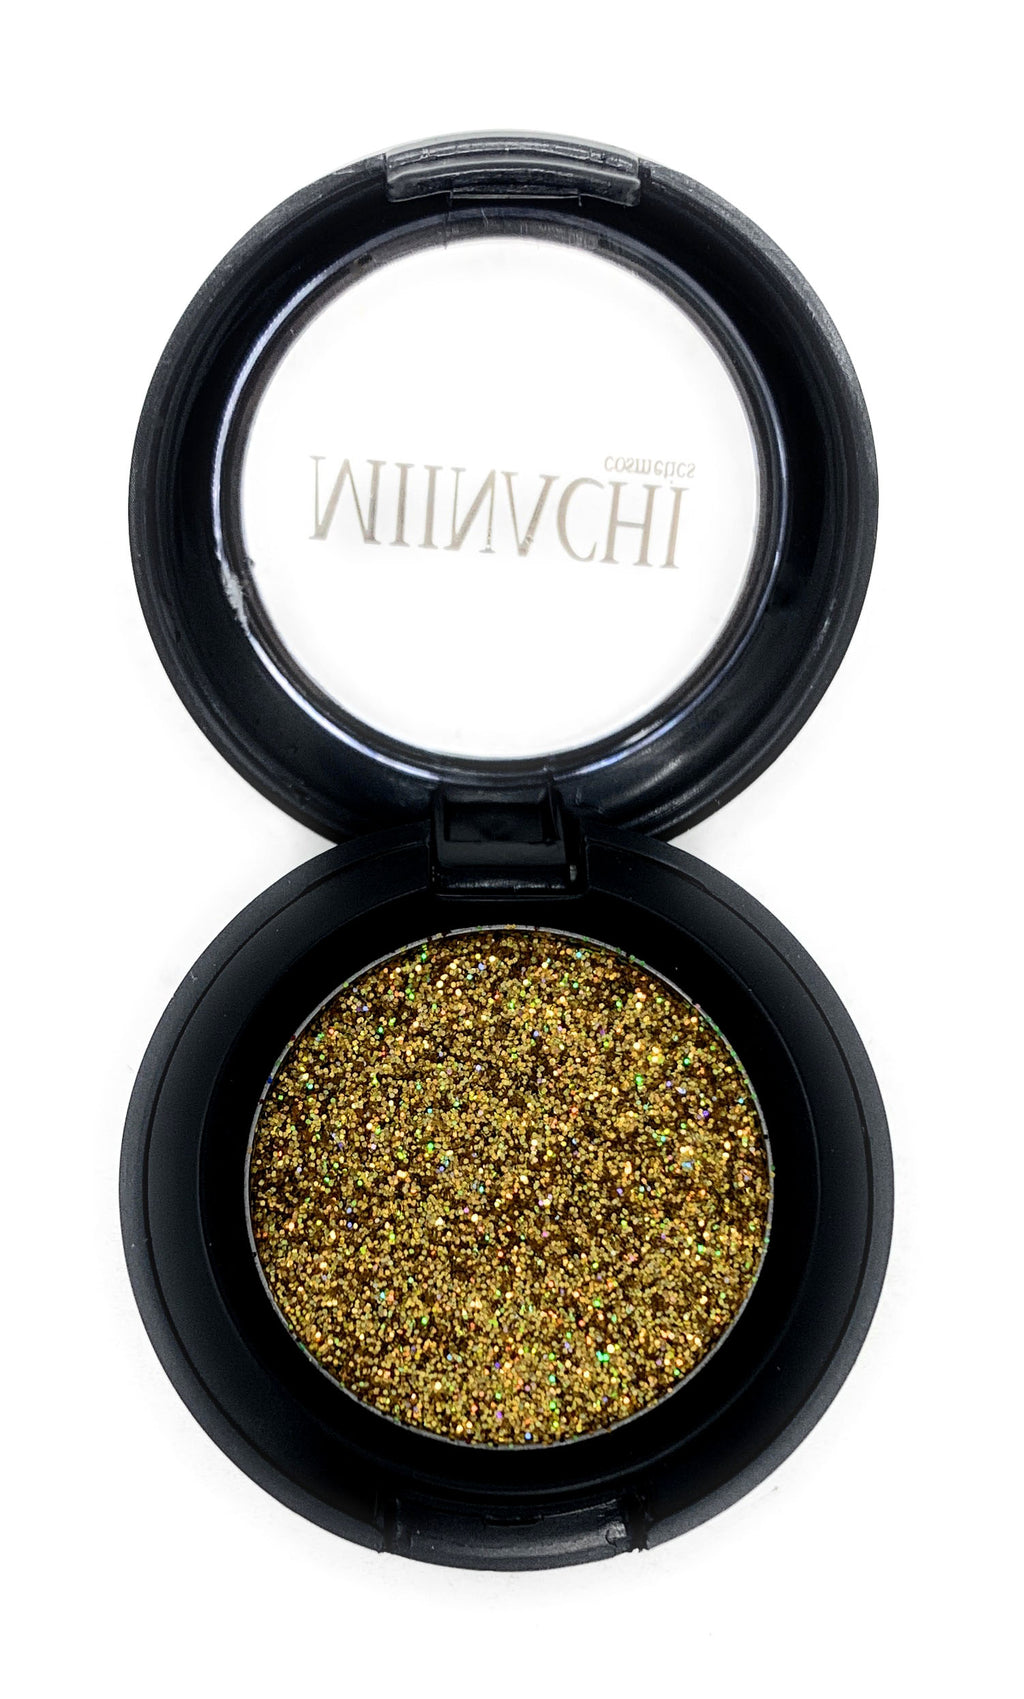 Single Pressed Glitter in the shade Paris, No Glue Needed, In Compact, Pigmented, No Fall Out, Glitter, Cosmetic Grade Glitter, Gold